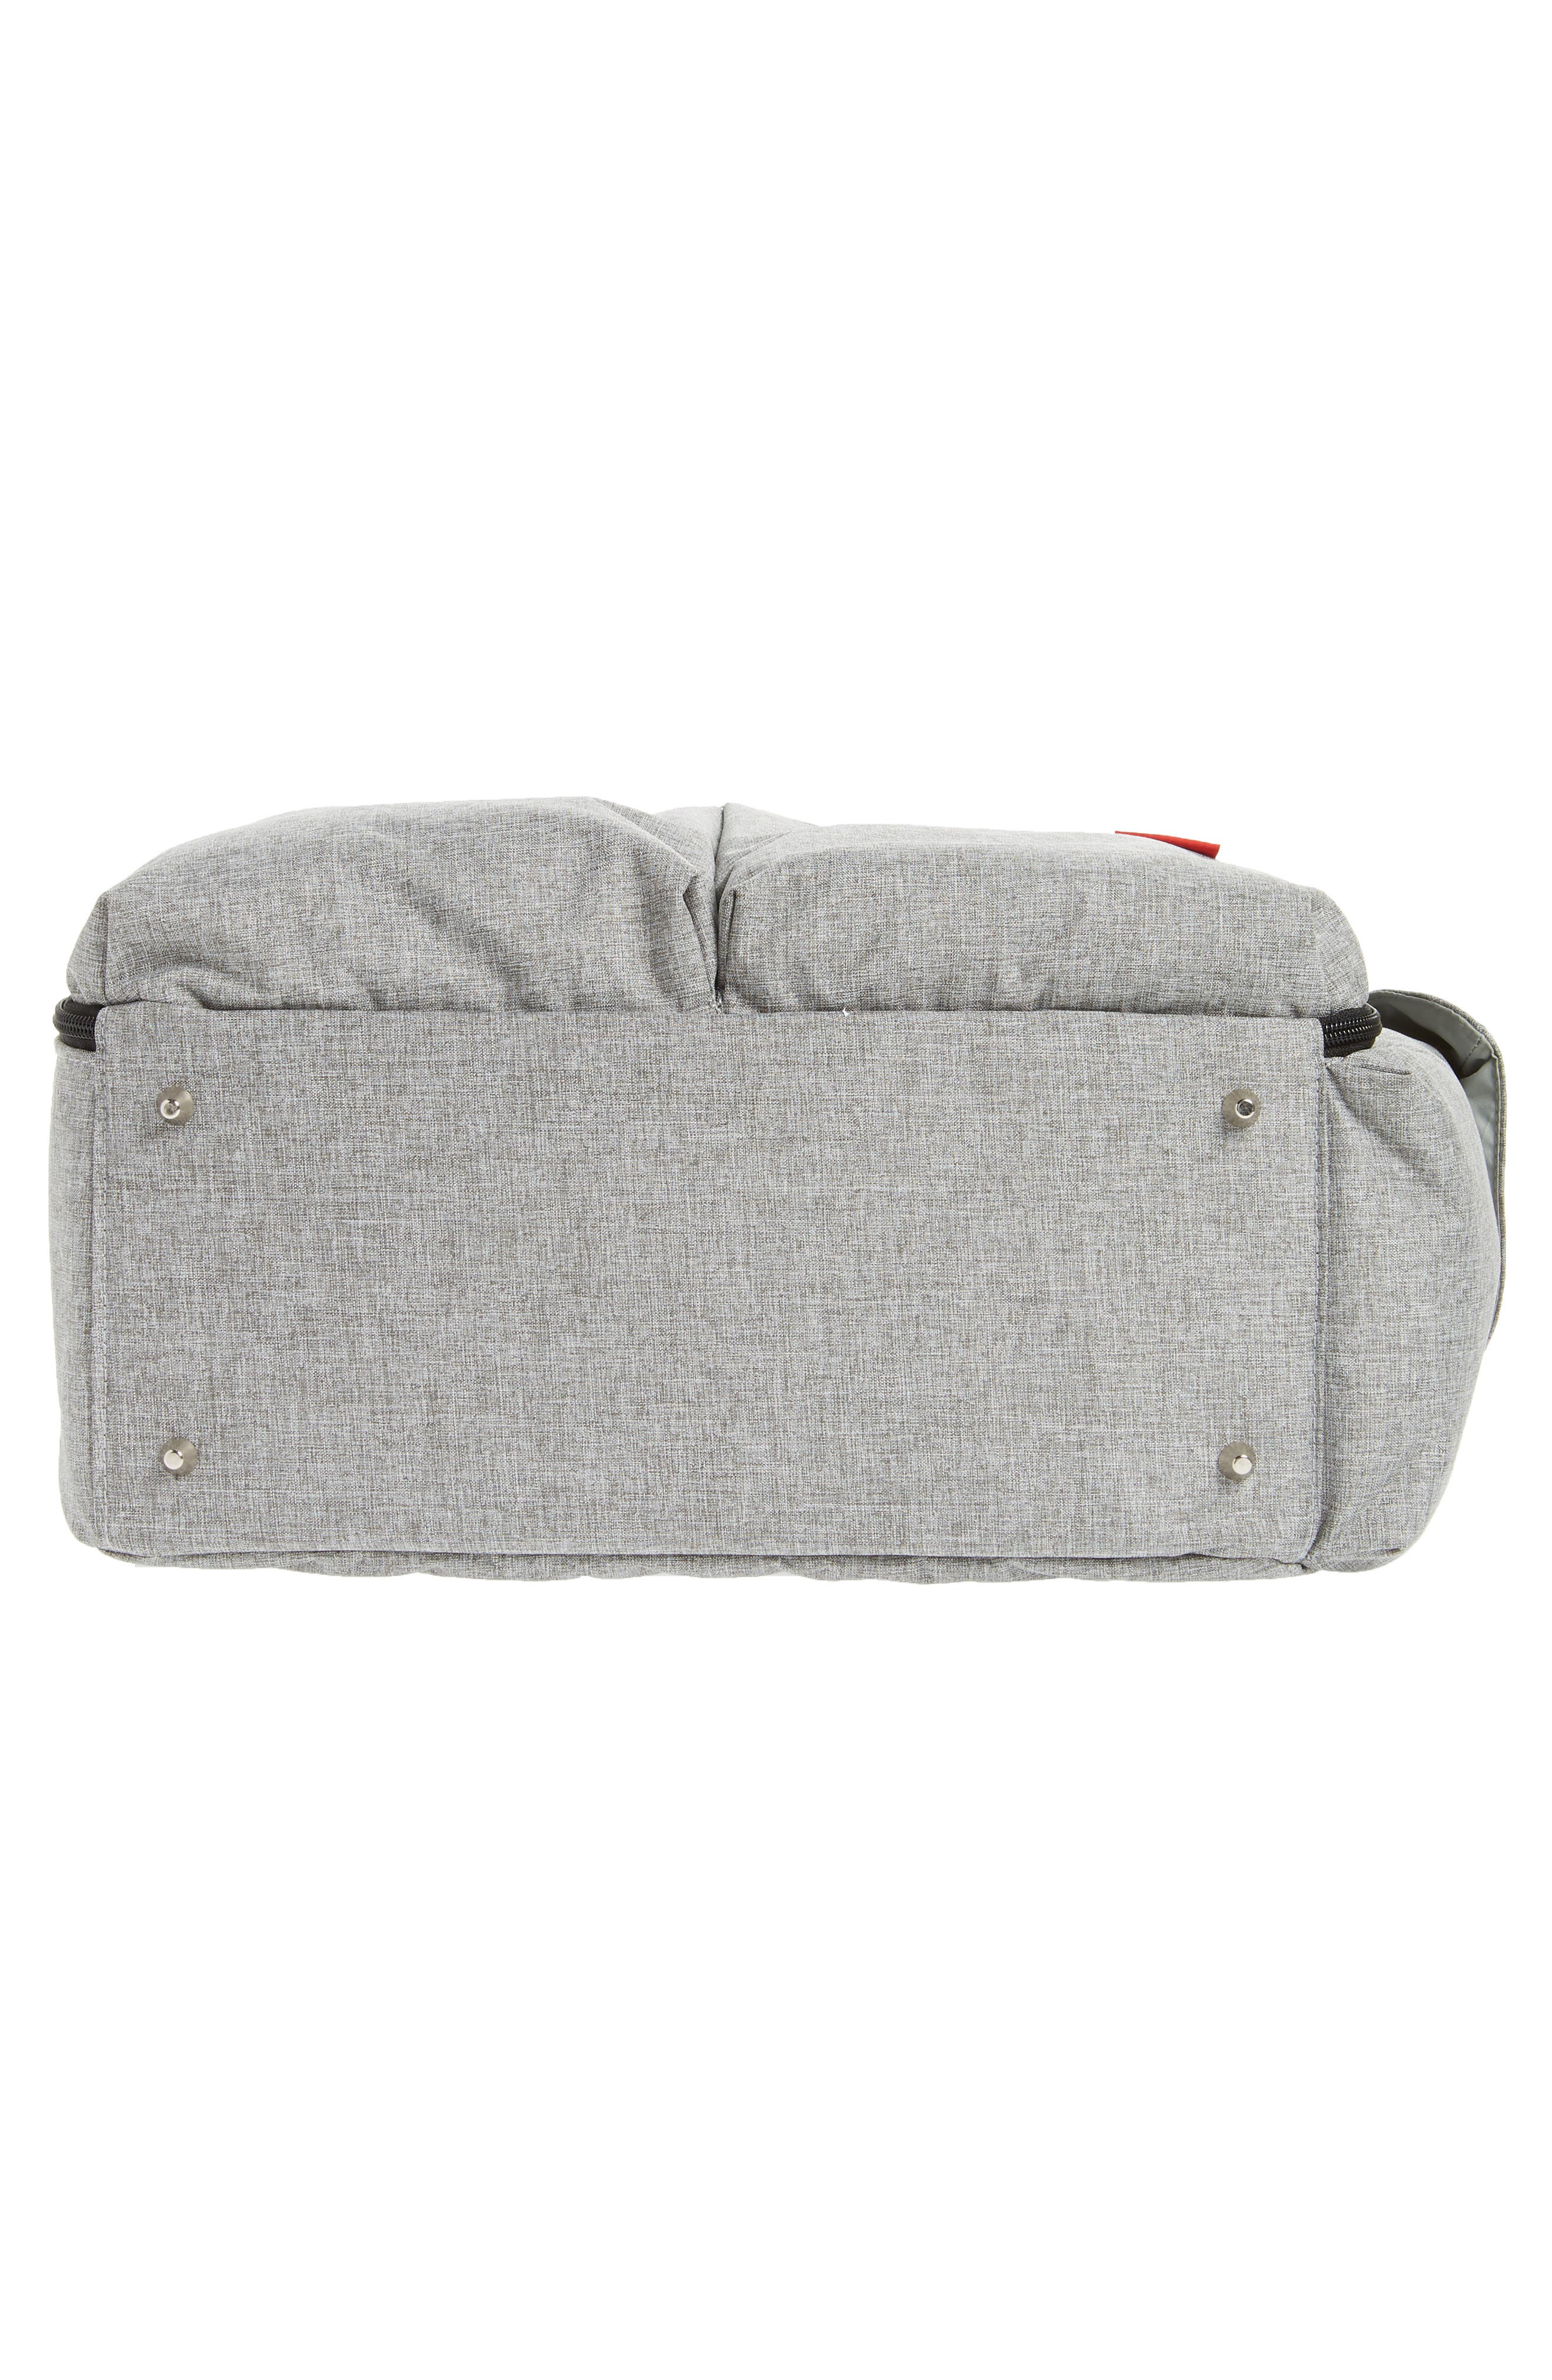 Duo Weekend Diaper Bag,                             Alternate thumbnail 6, color,                             GREY